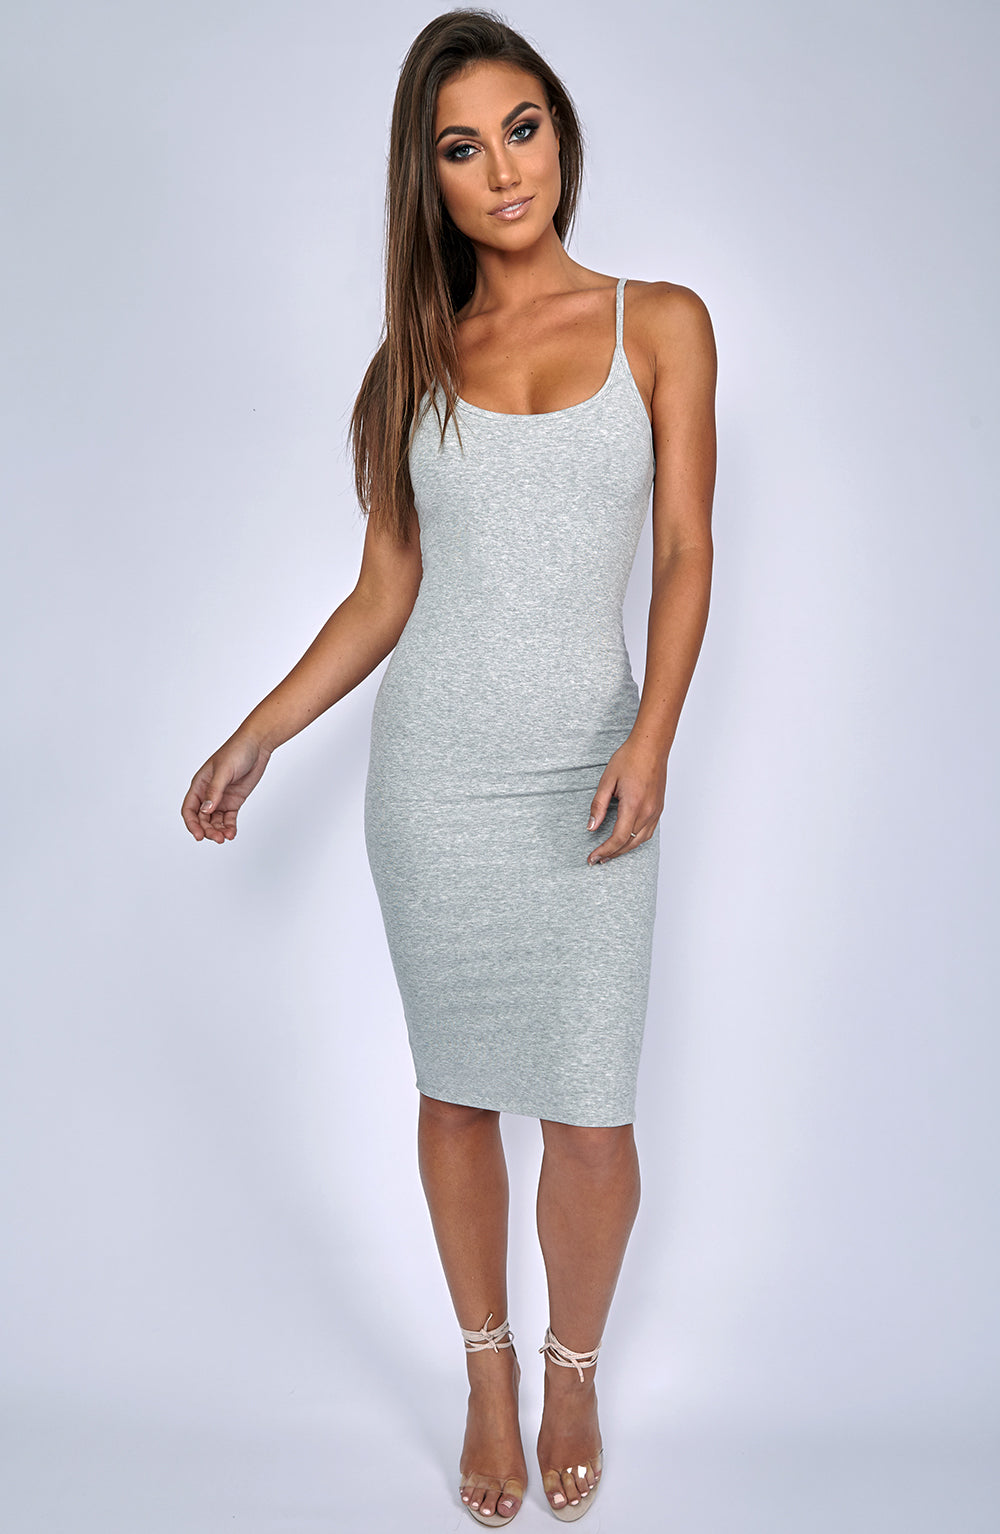 Zaphire Dress - Grey